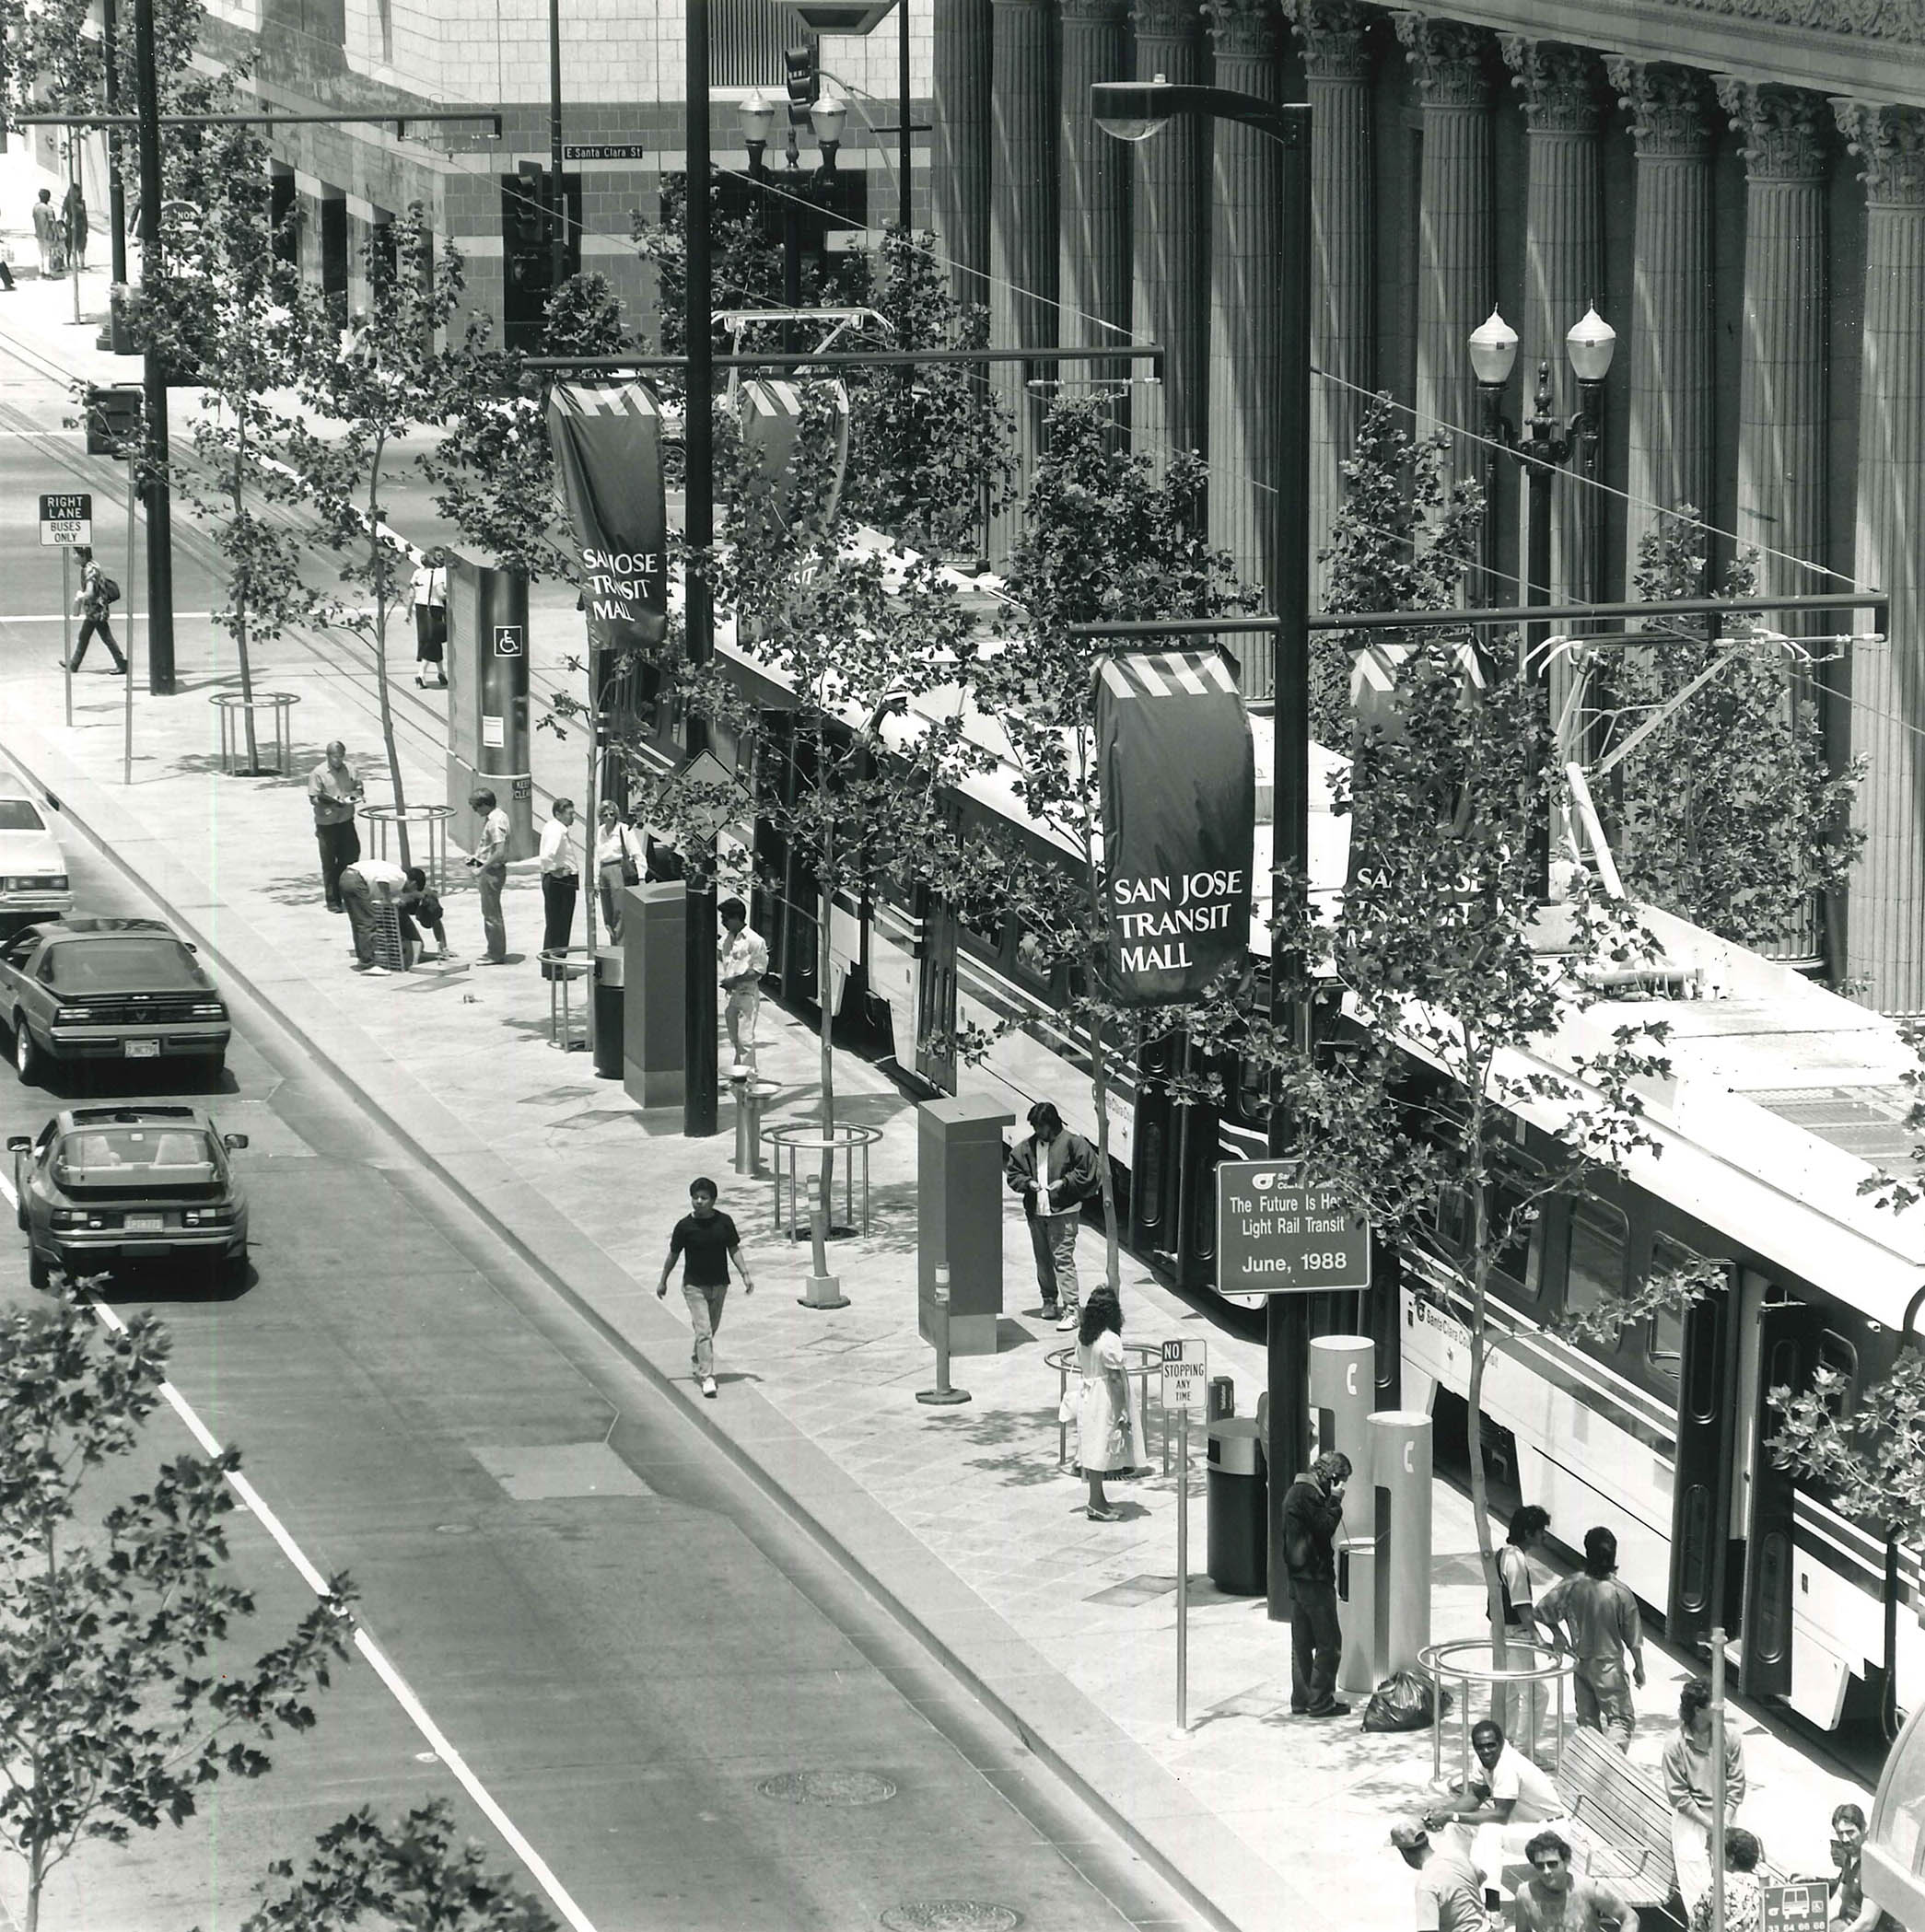 downtown San Jose transit mall in 1988